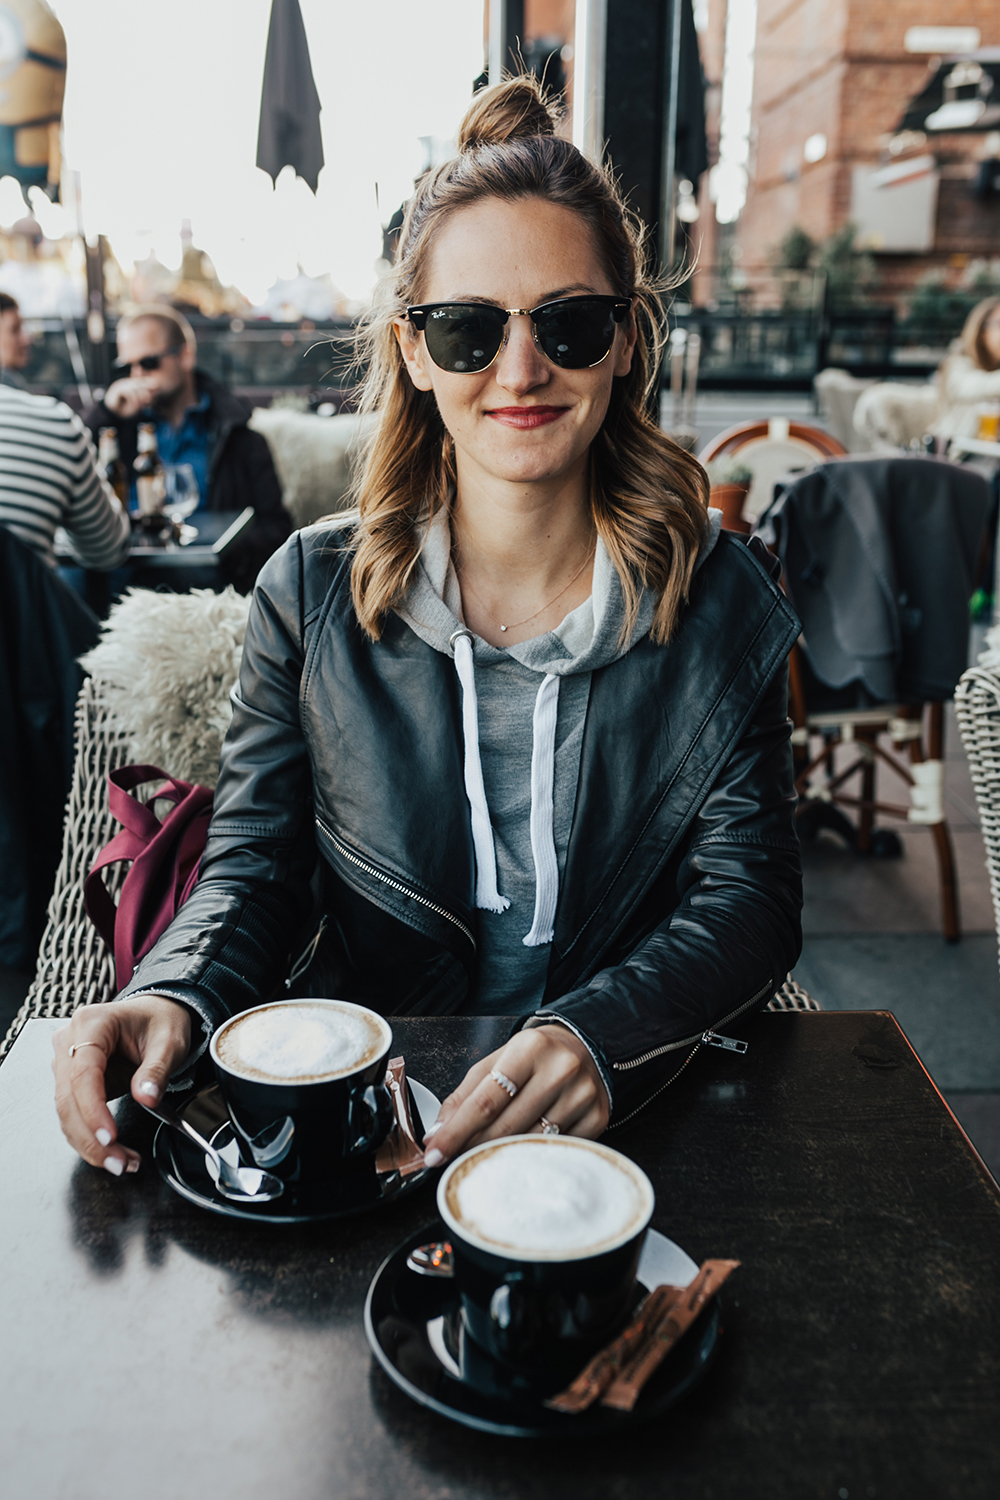 livvyland-blog-olivia-watson-fashion-travel-blogger-princess-cruises-scandinavia-what-to-wear-pack-oslo-norway-cafe-cappuccino-coffee-shop